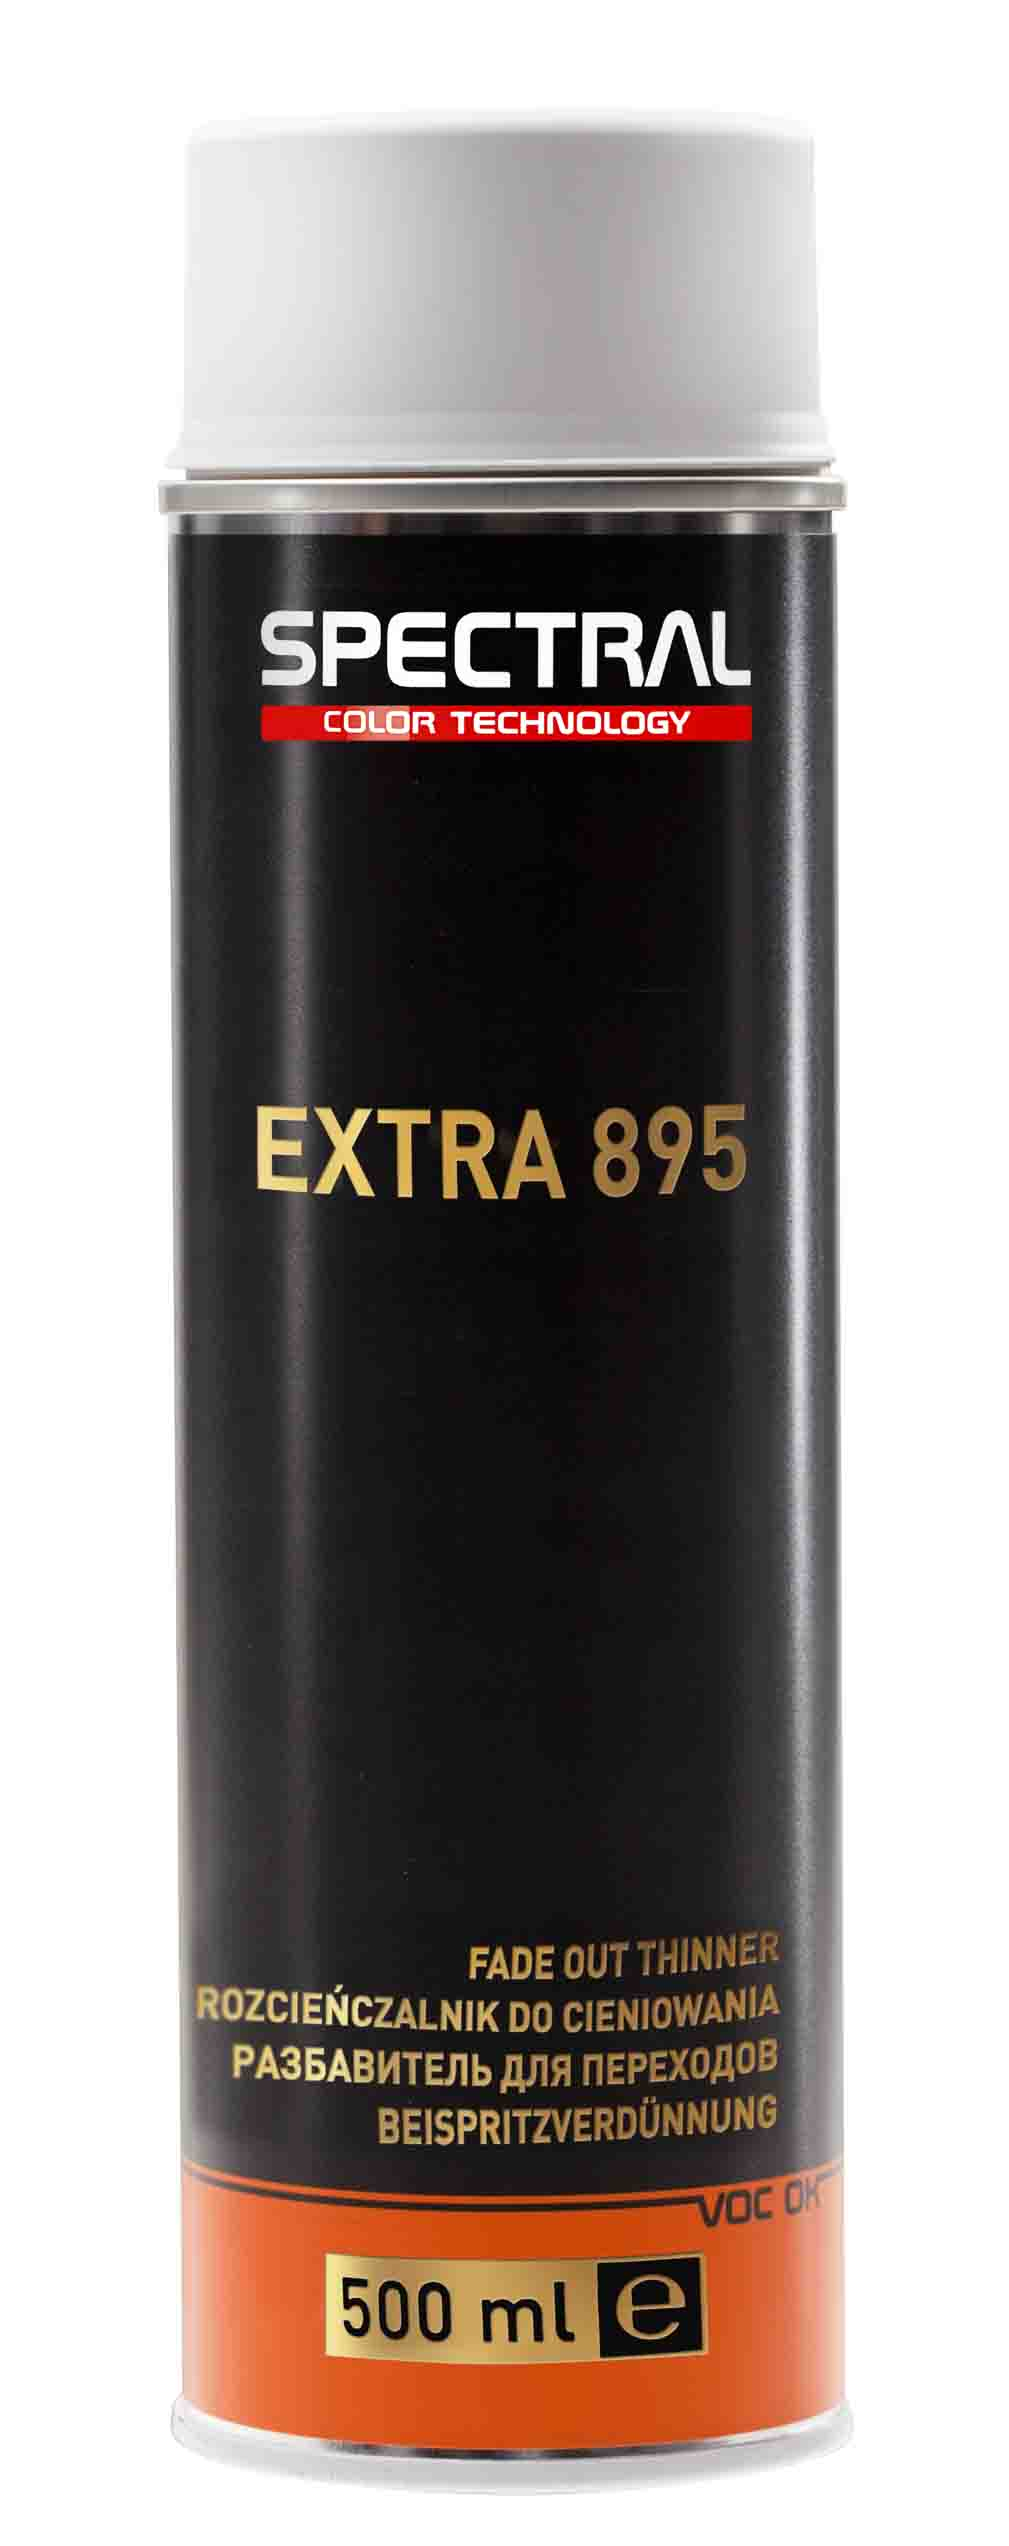 Spectral extra 895